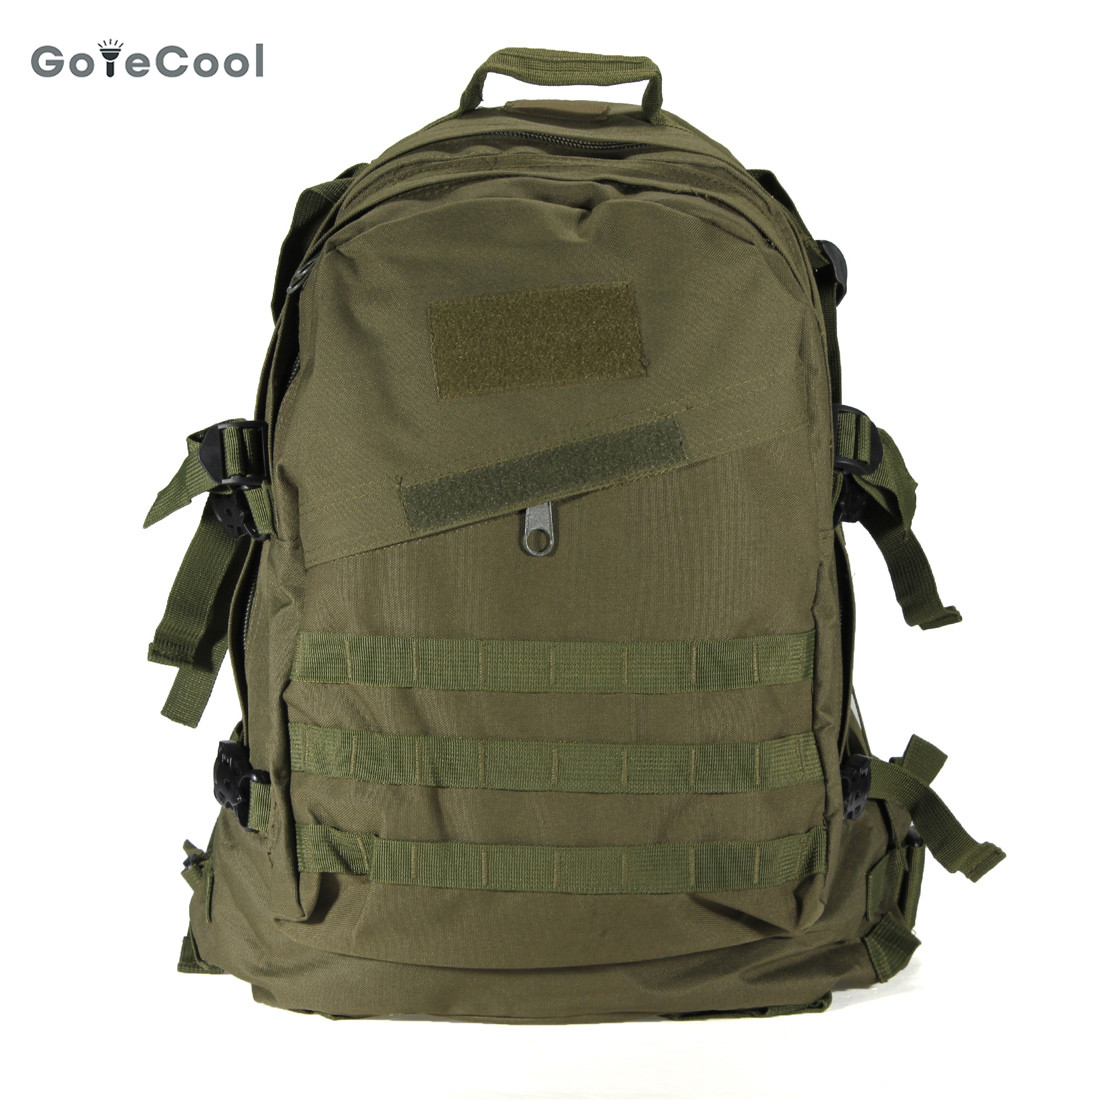 40L 3D Outdoor Sport nylon Military Tactical Backpack Rucksack travel Bag Camping Hiking climbing bag 40l 3d outdoor sport nylon military tactical backpack rucksack travel bag camping hiking climbing bag